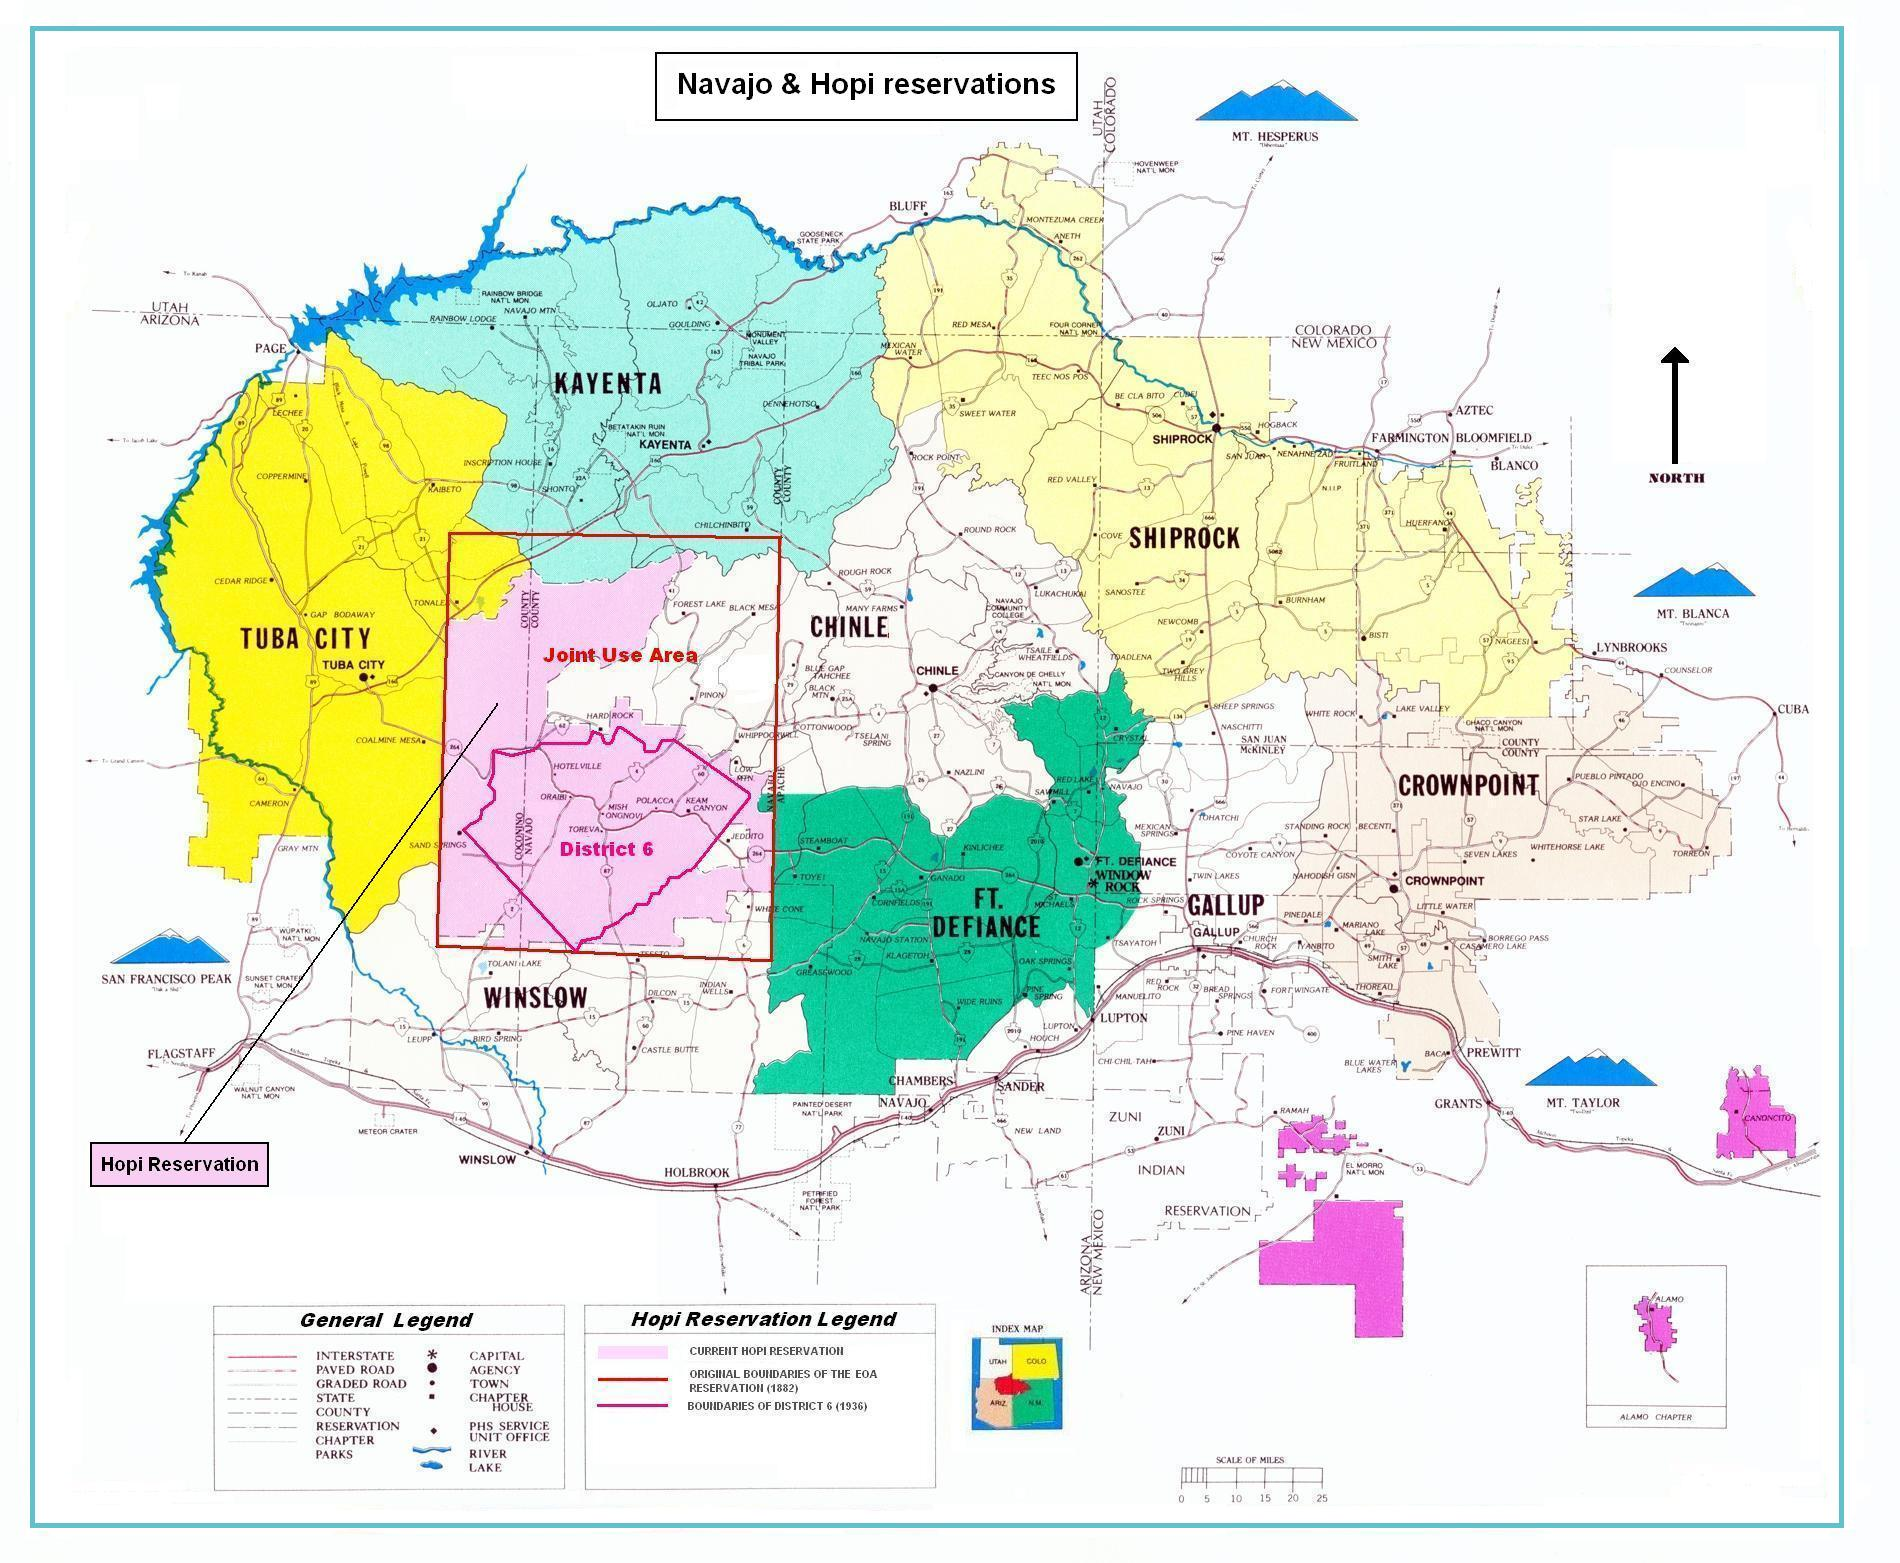 arizona indian reservation map with File 3ahopi Reservation Partion  26 Navajo Reservation on File 3AHopi reservation partion  26 Navajo Reservation in addition  further Havasupai also Havasu Falls furthermore File pima county incorporated and unincorporated areas tohono oodham highlighted.